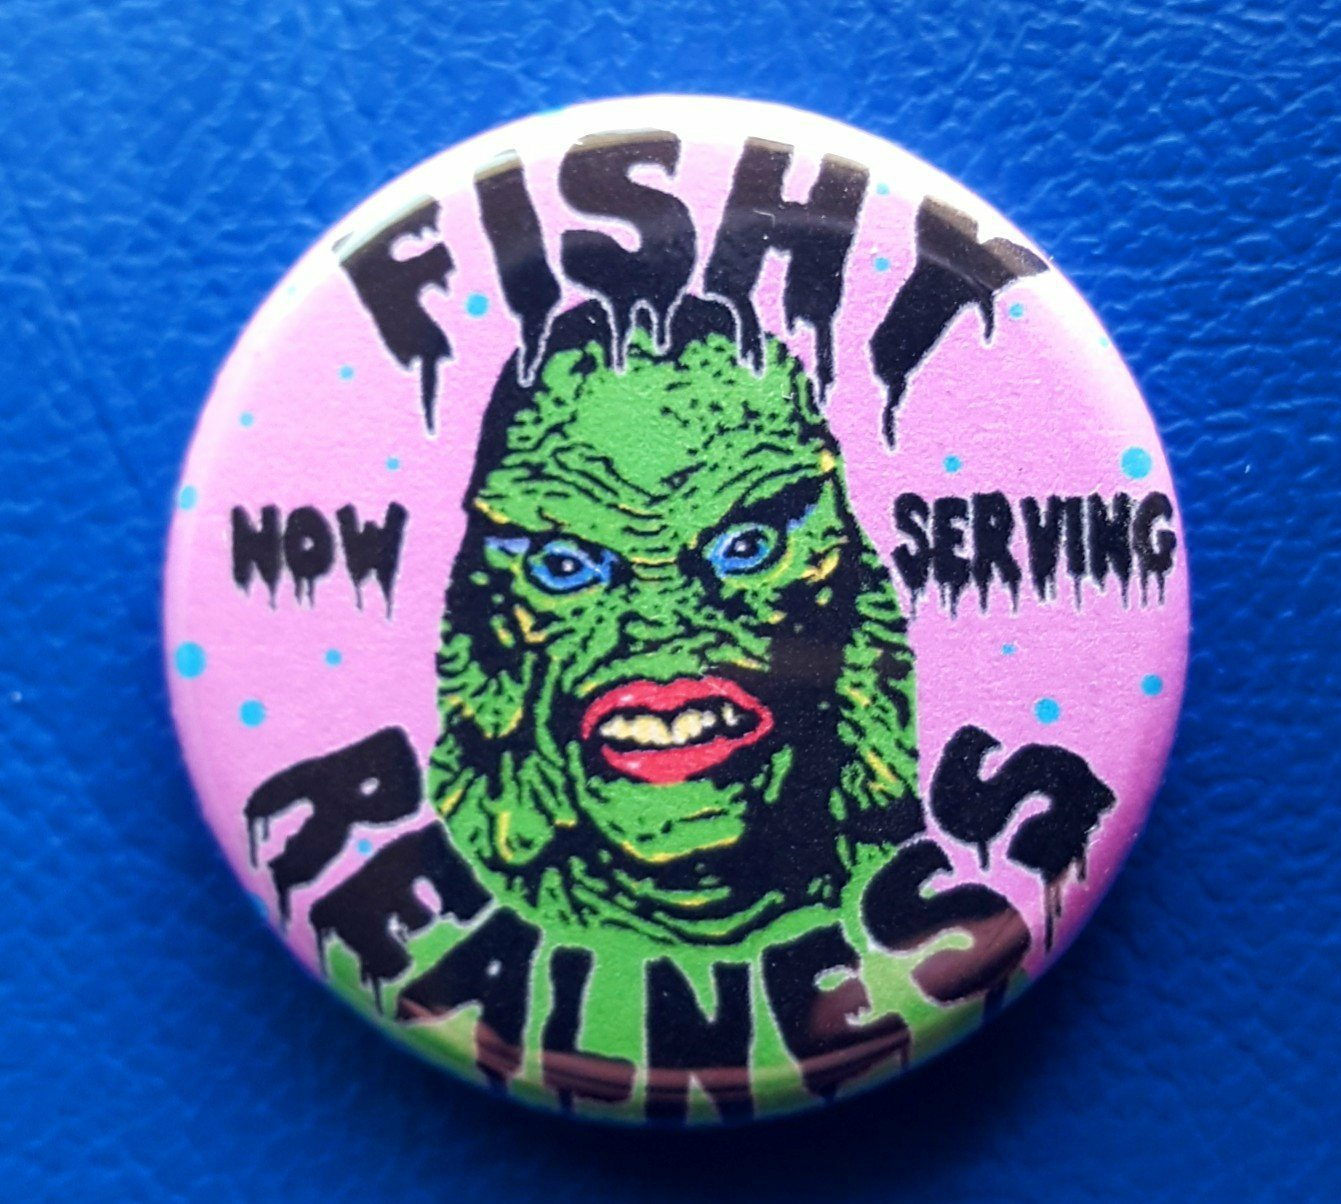 Now Serving Fishy Realness 1.25 inch Pinback Button or Magnet